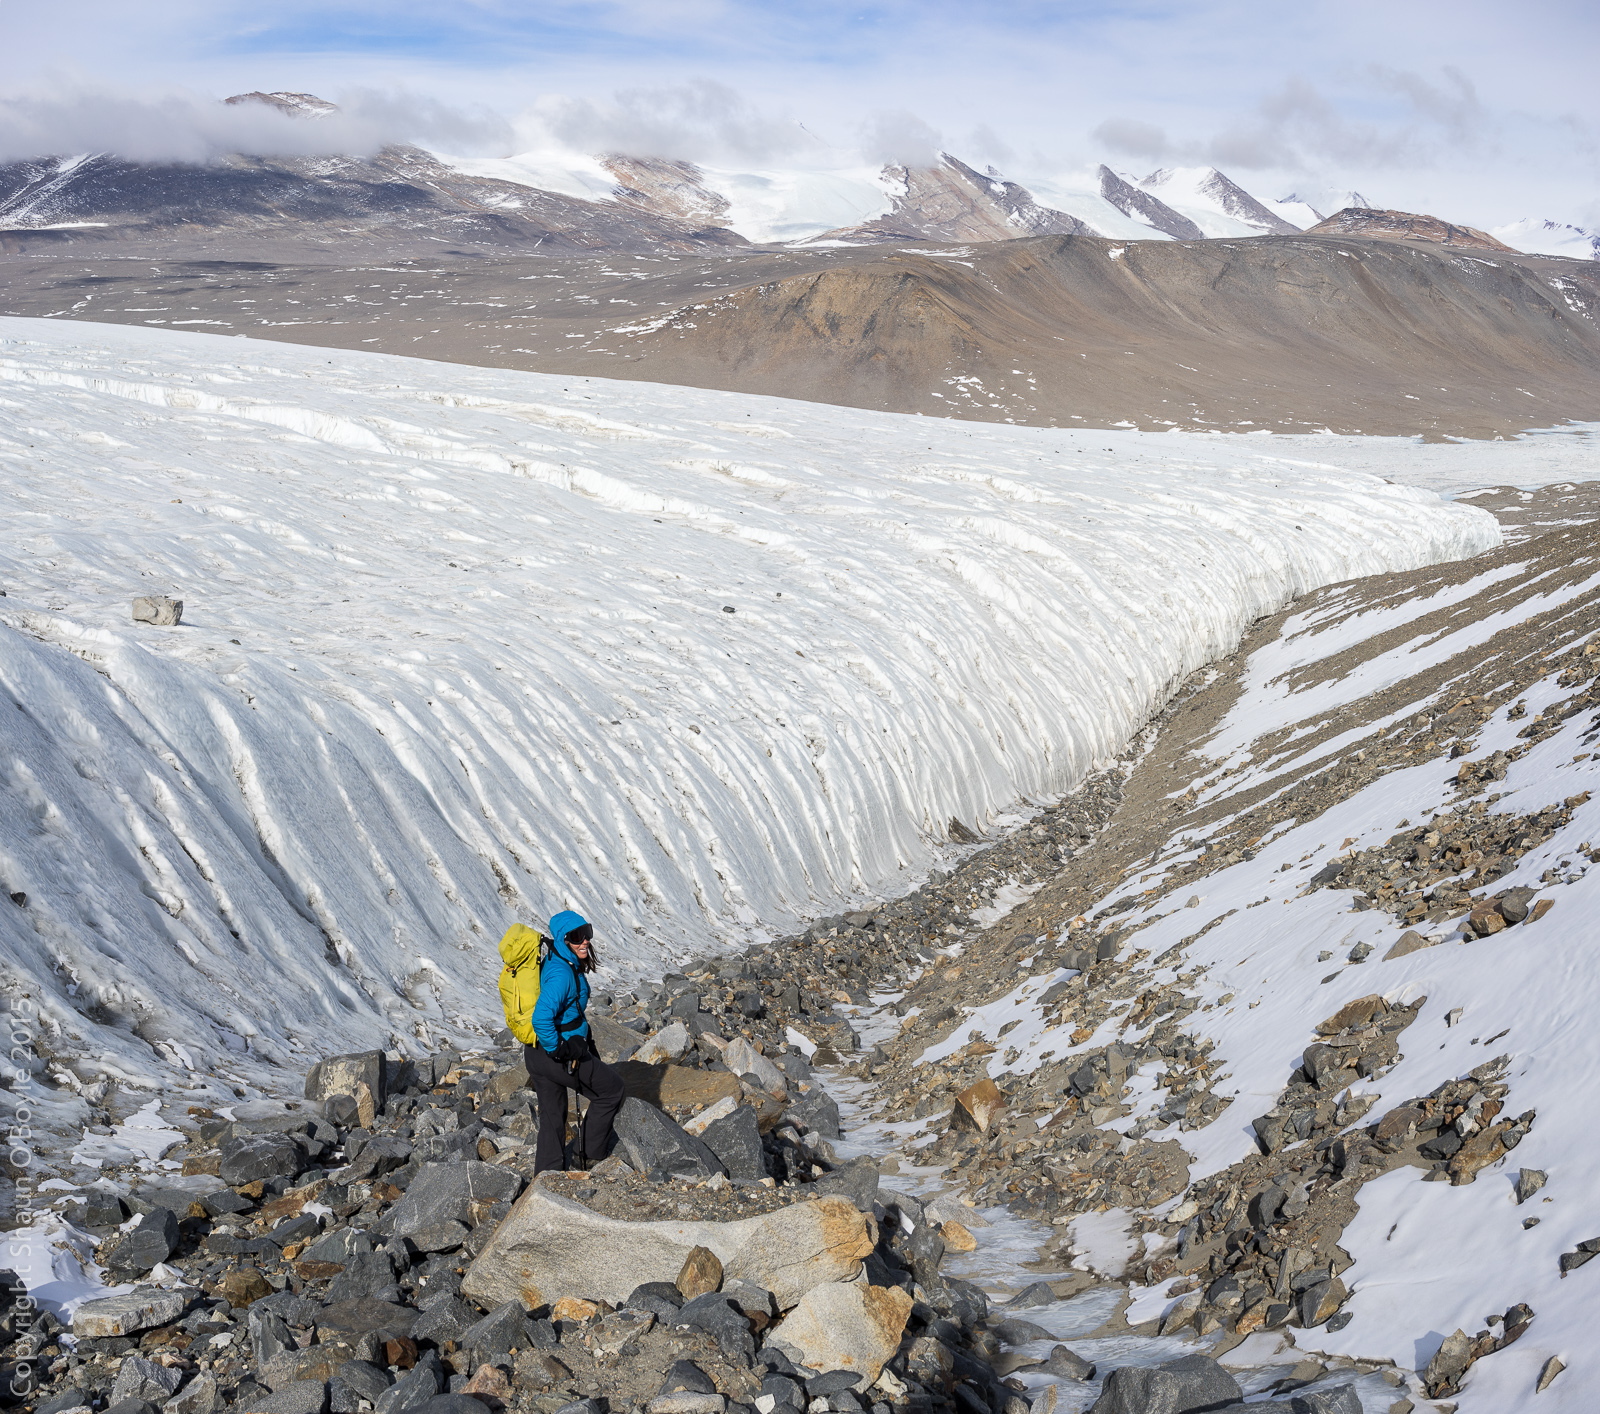 Renee as we descend the lateral moraine of the Canada Glacier